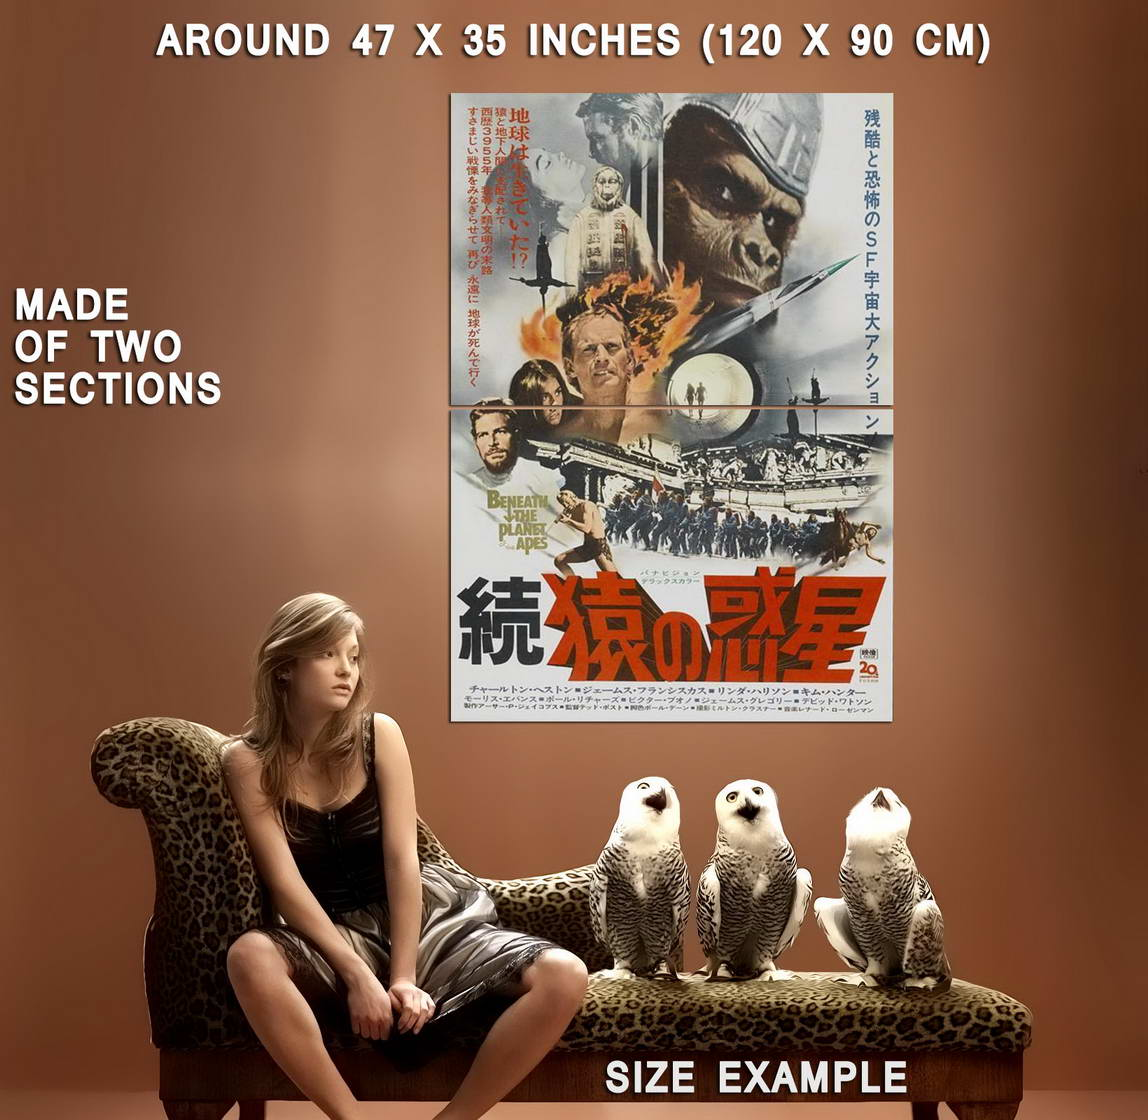 65838-Beneath-the-Planet-of-the-Apes-Movie-Wall-Print-Poster-Affiche